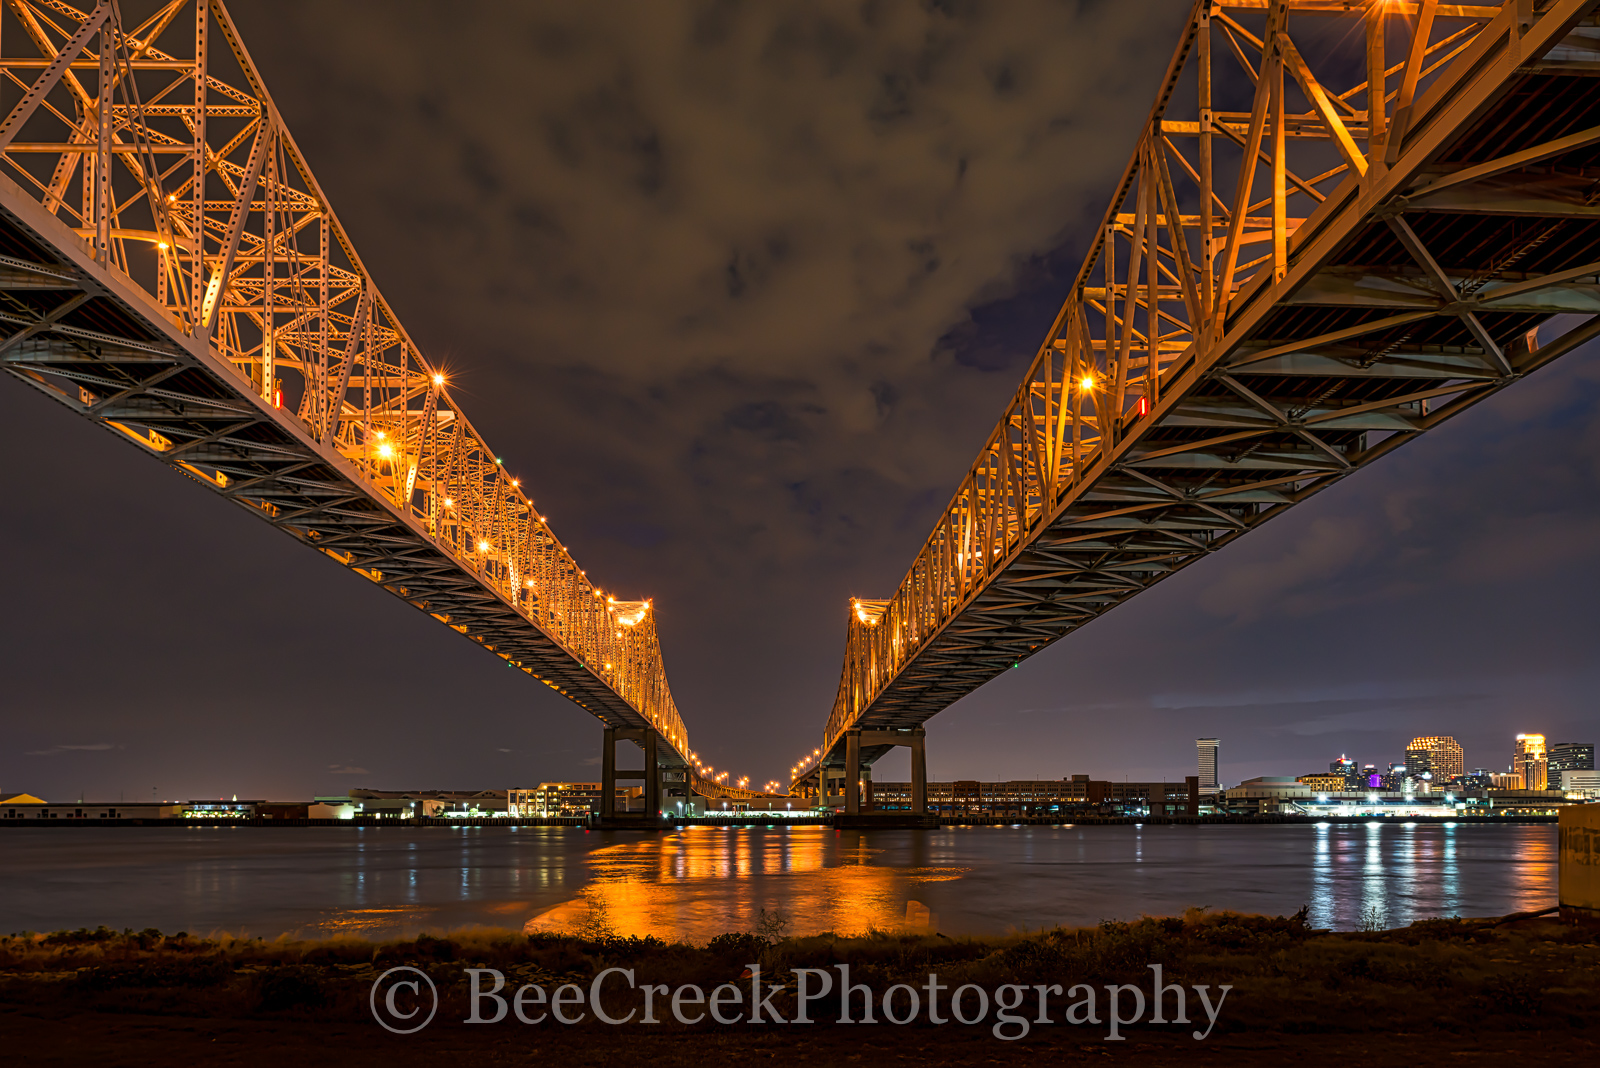 New Orleans, cityscape, cityscapes, dark, double bridges, lights, mississippi, night, reflections, river bridges, urban, water, New Orleans cityscapes, , photo